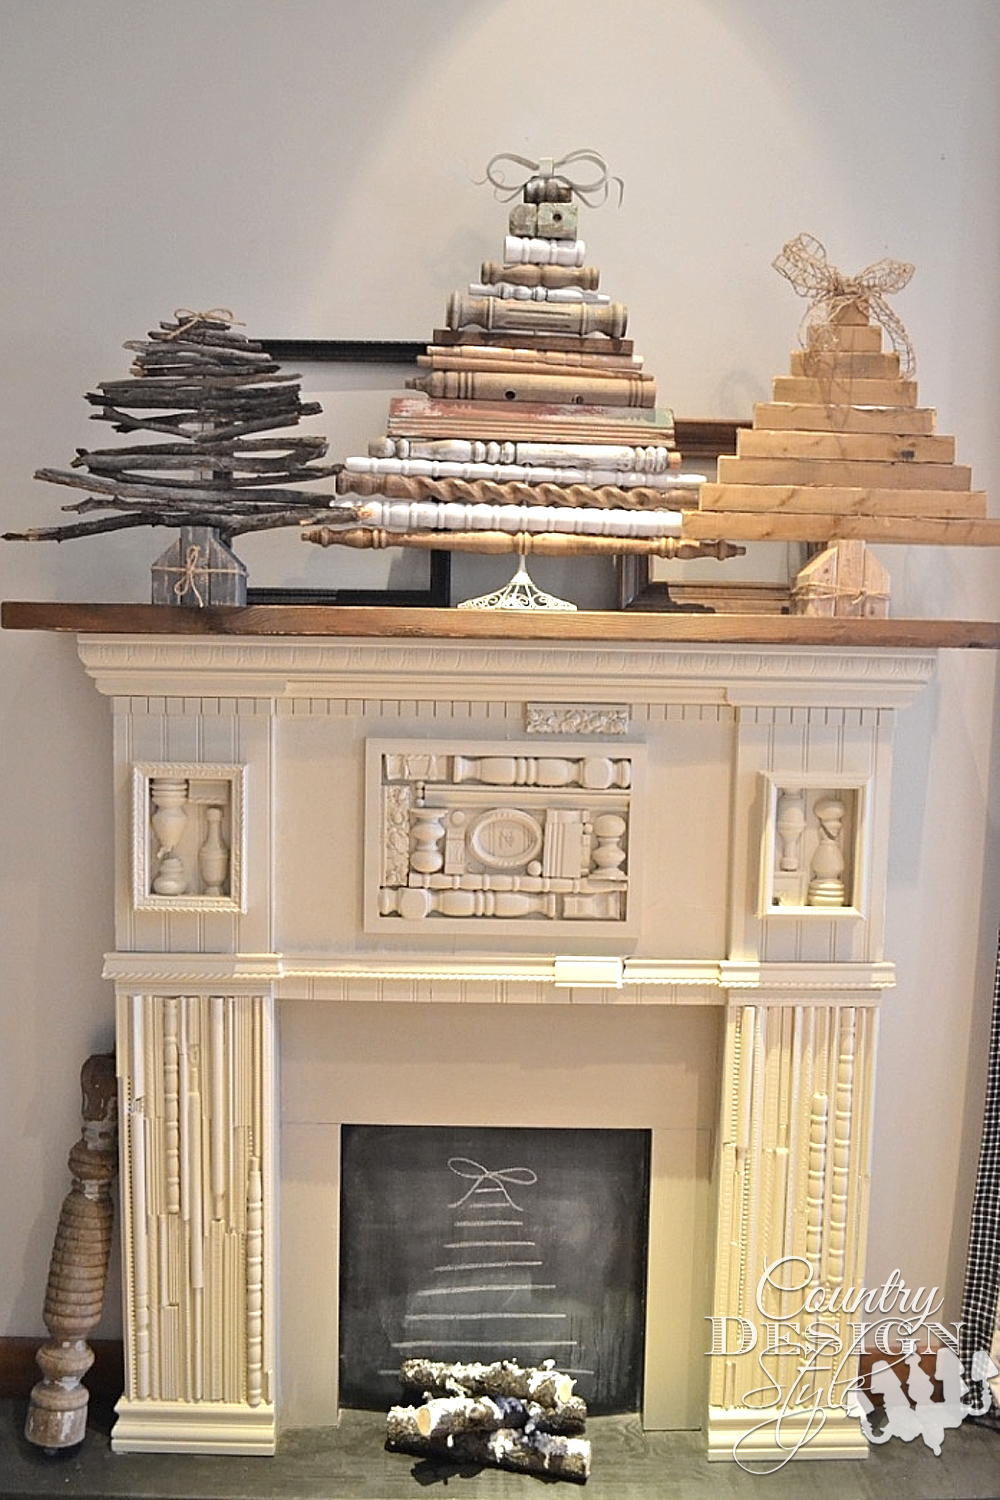 How to decorate a diy faux fireplace country design style for Artificial logs for decoration